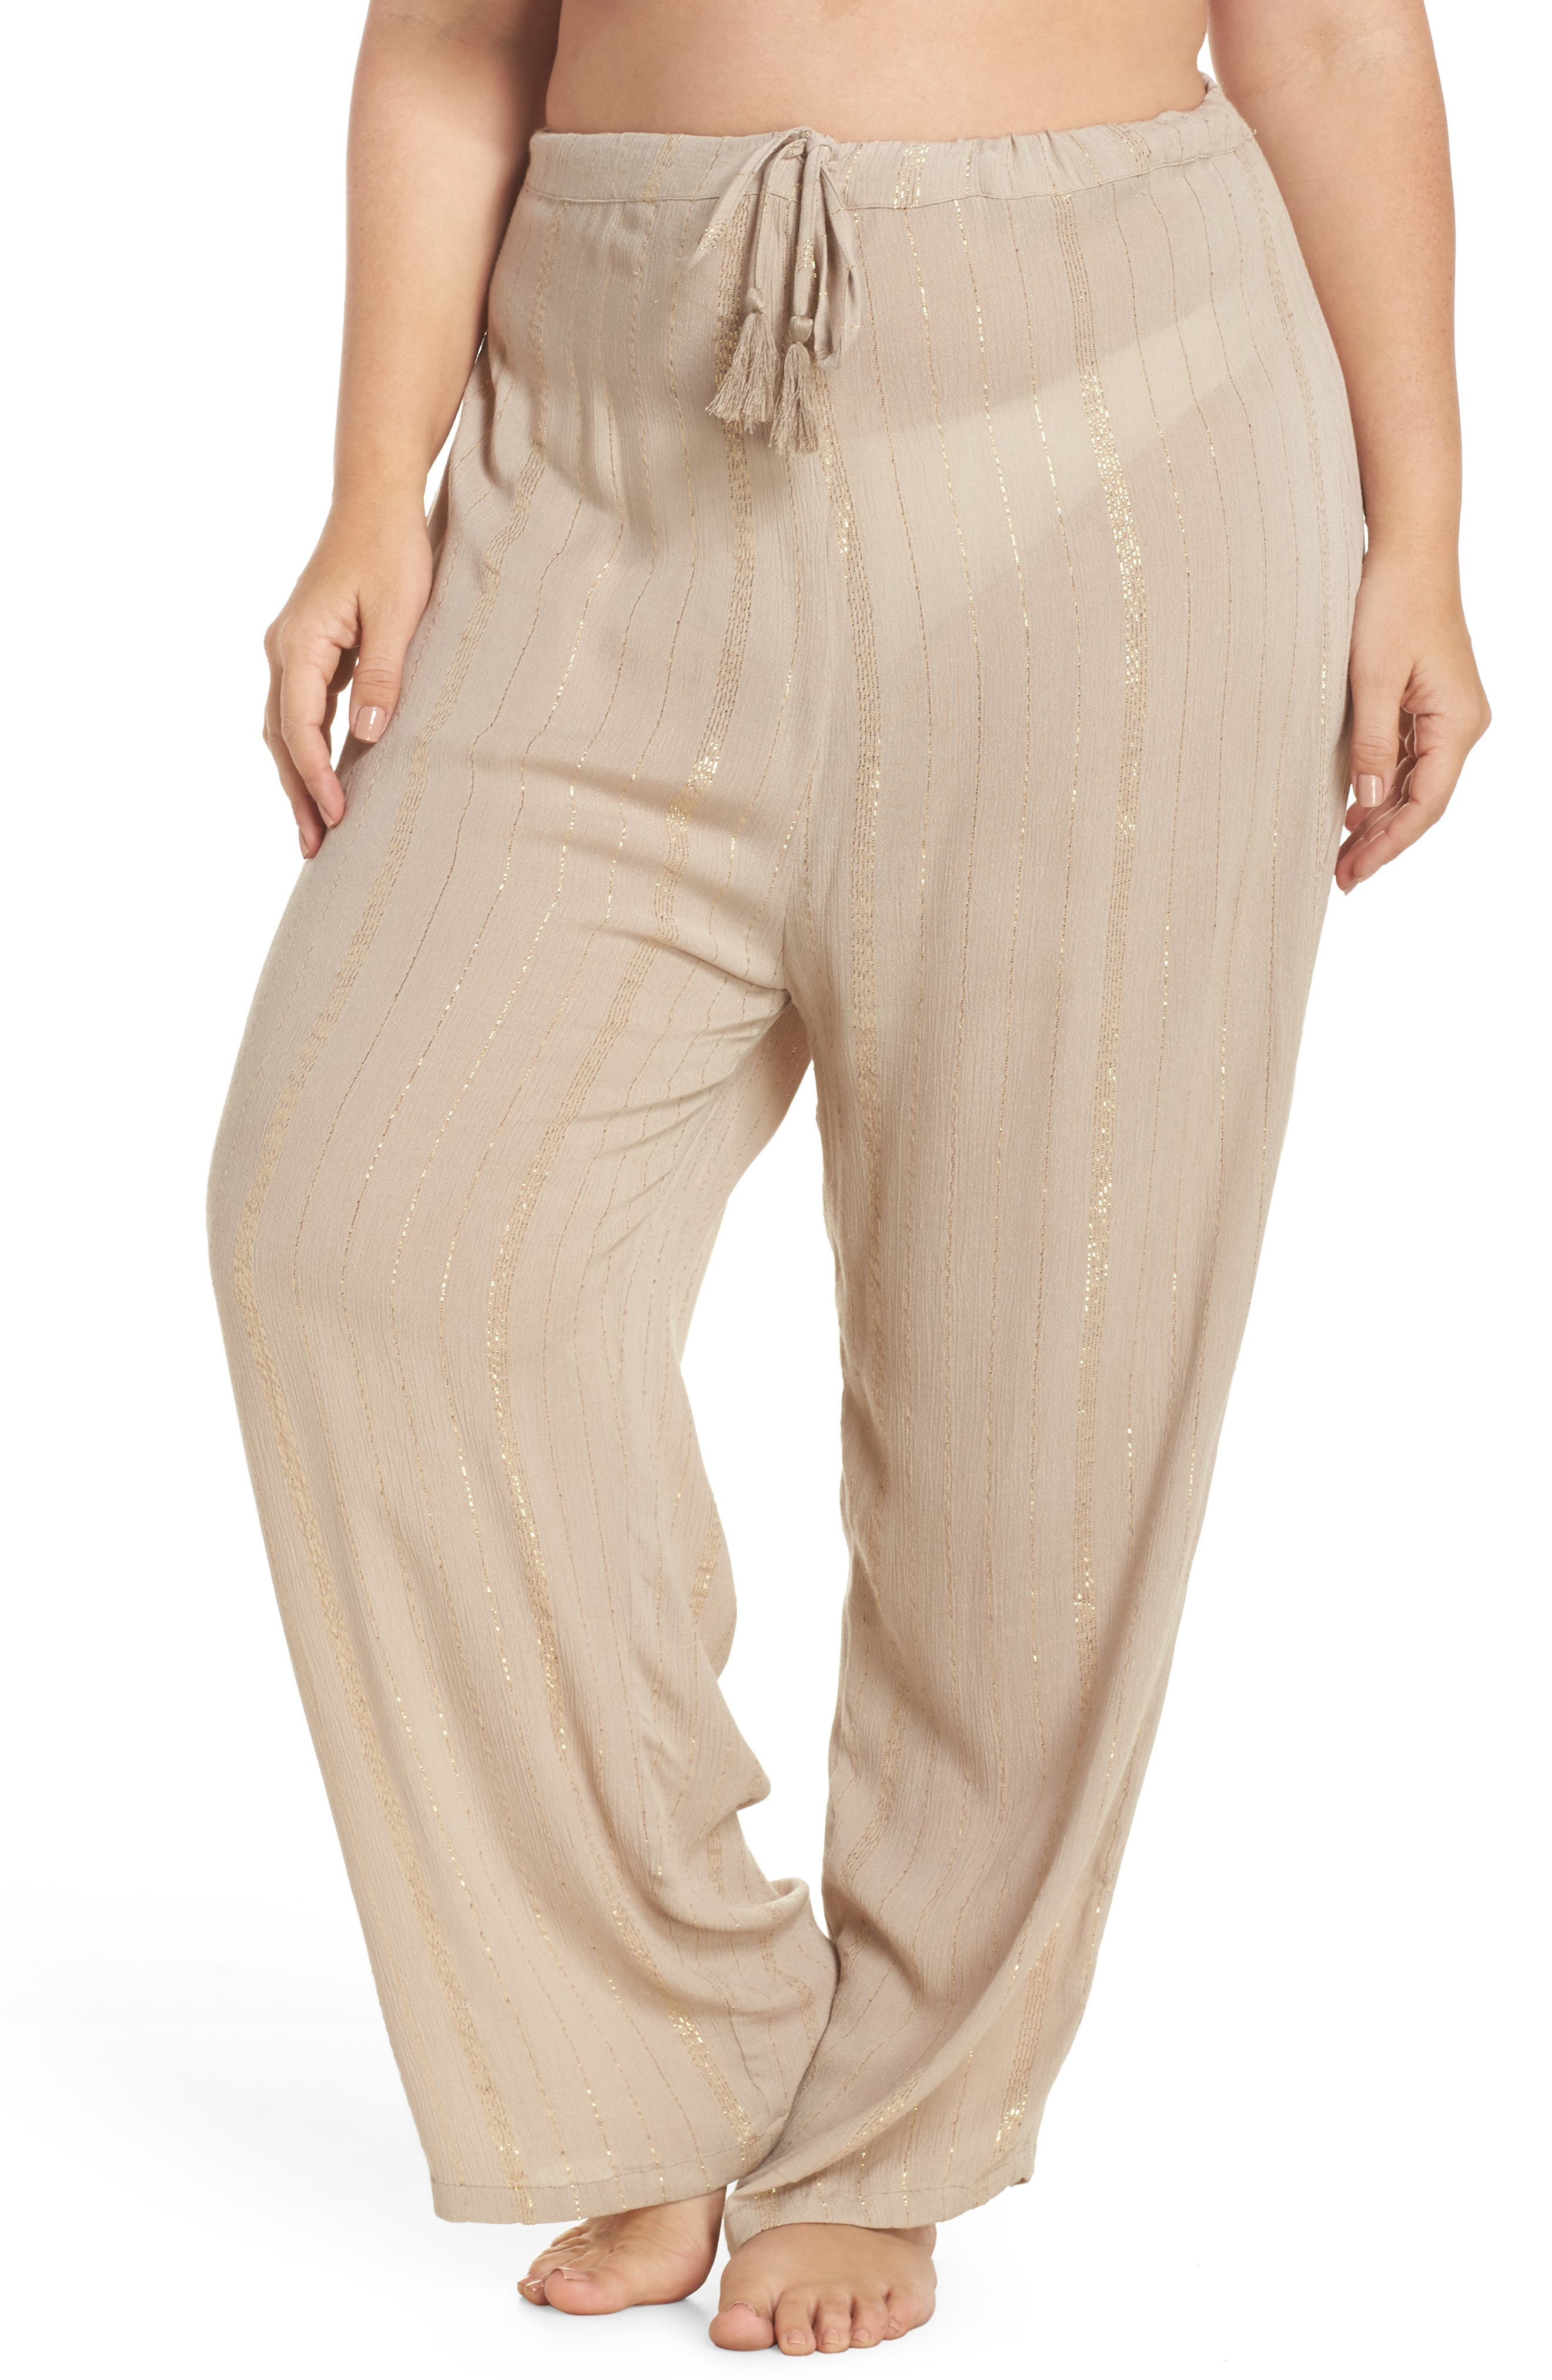 Iris Cover-Up Pants,                             Main thumbnail 1, color,                             Taupe/ Gold